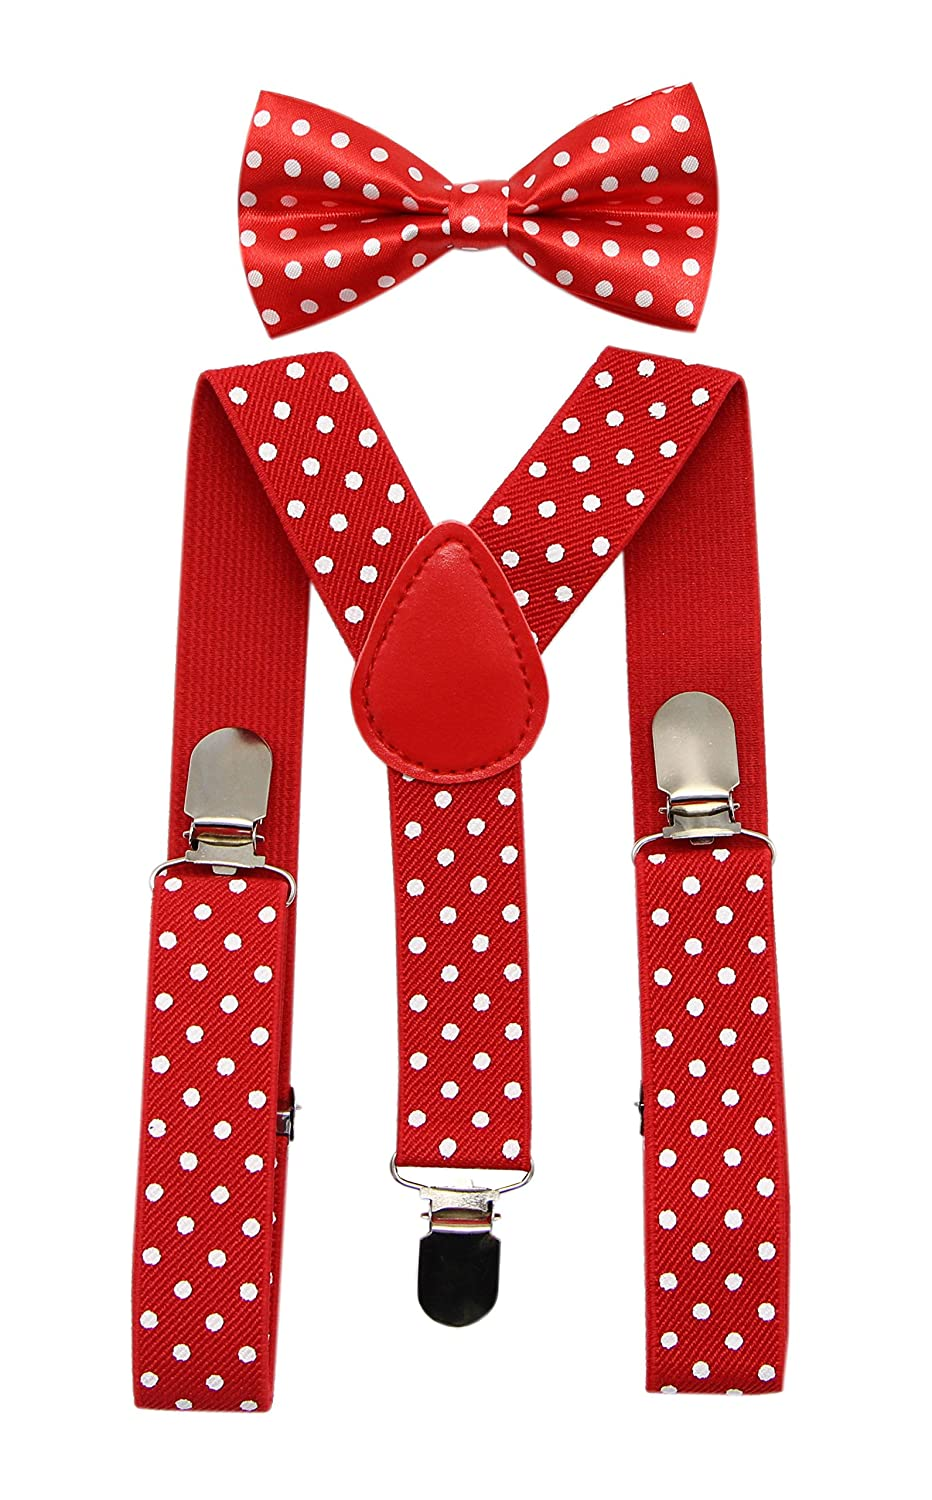 JAIFEI Suspender& Bow Tie Set-Adjustable Strong Clip-on Suspender for Boys& Girls (Dark Gray)